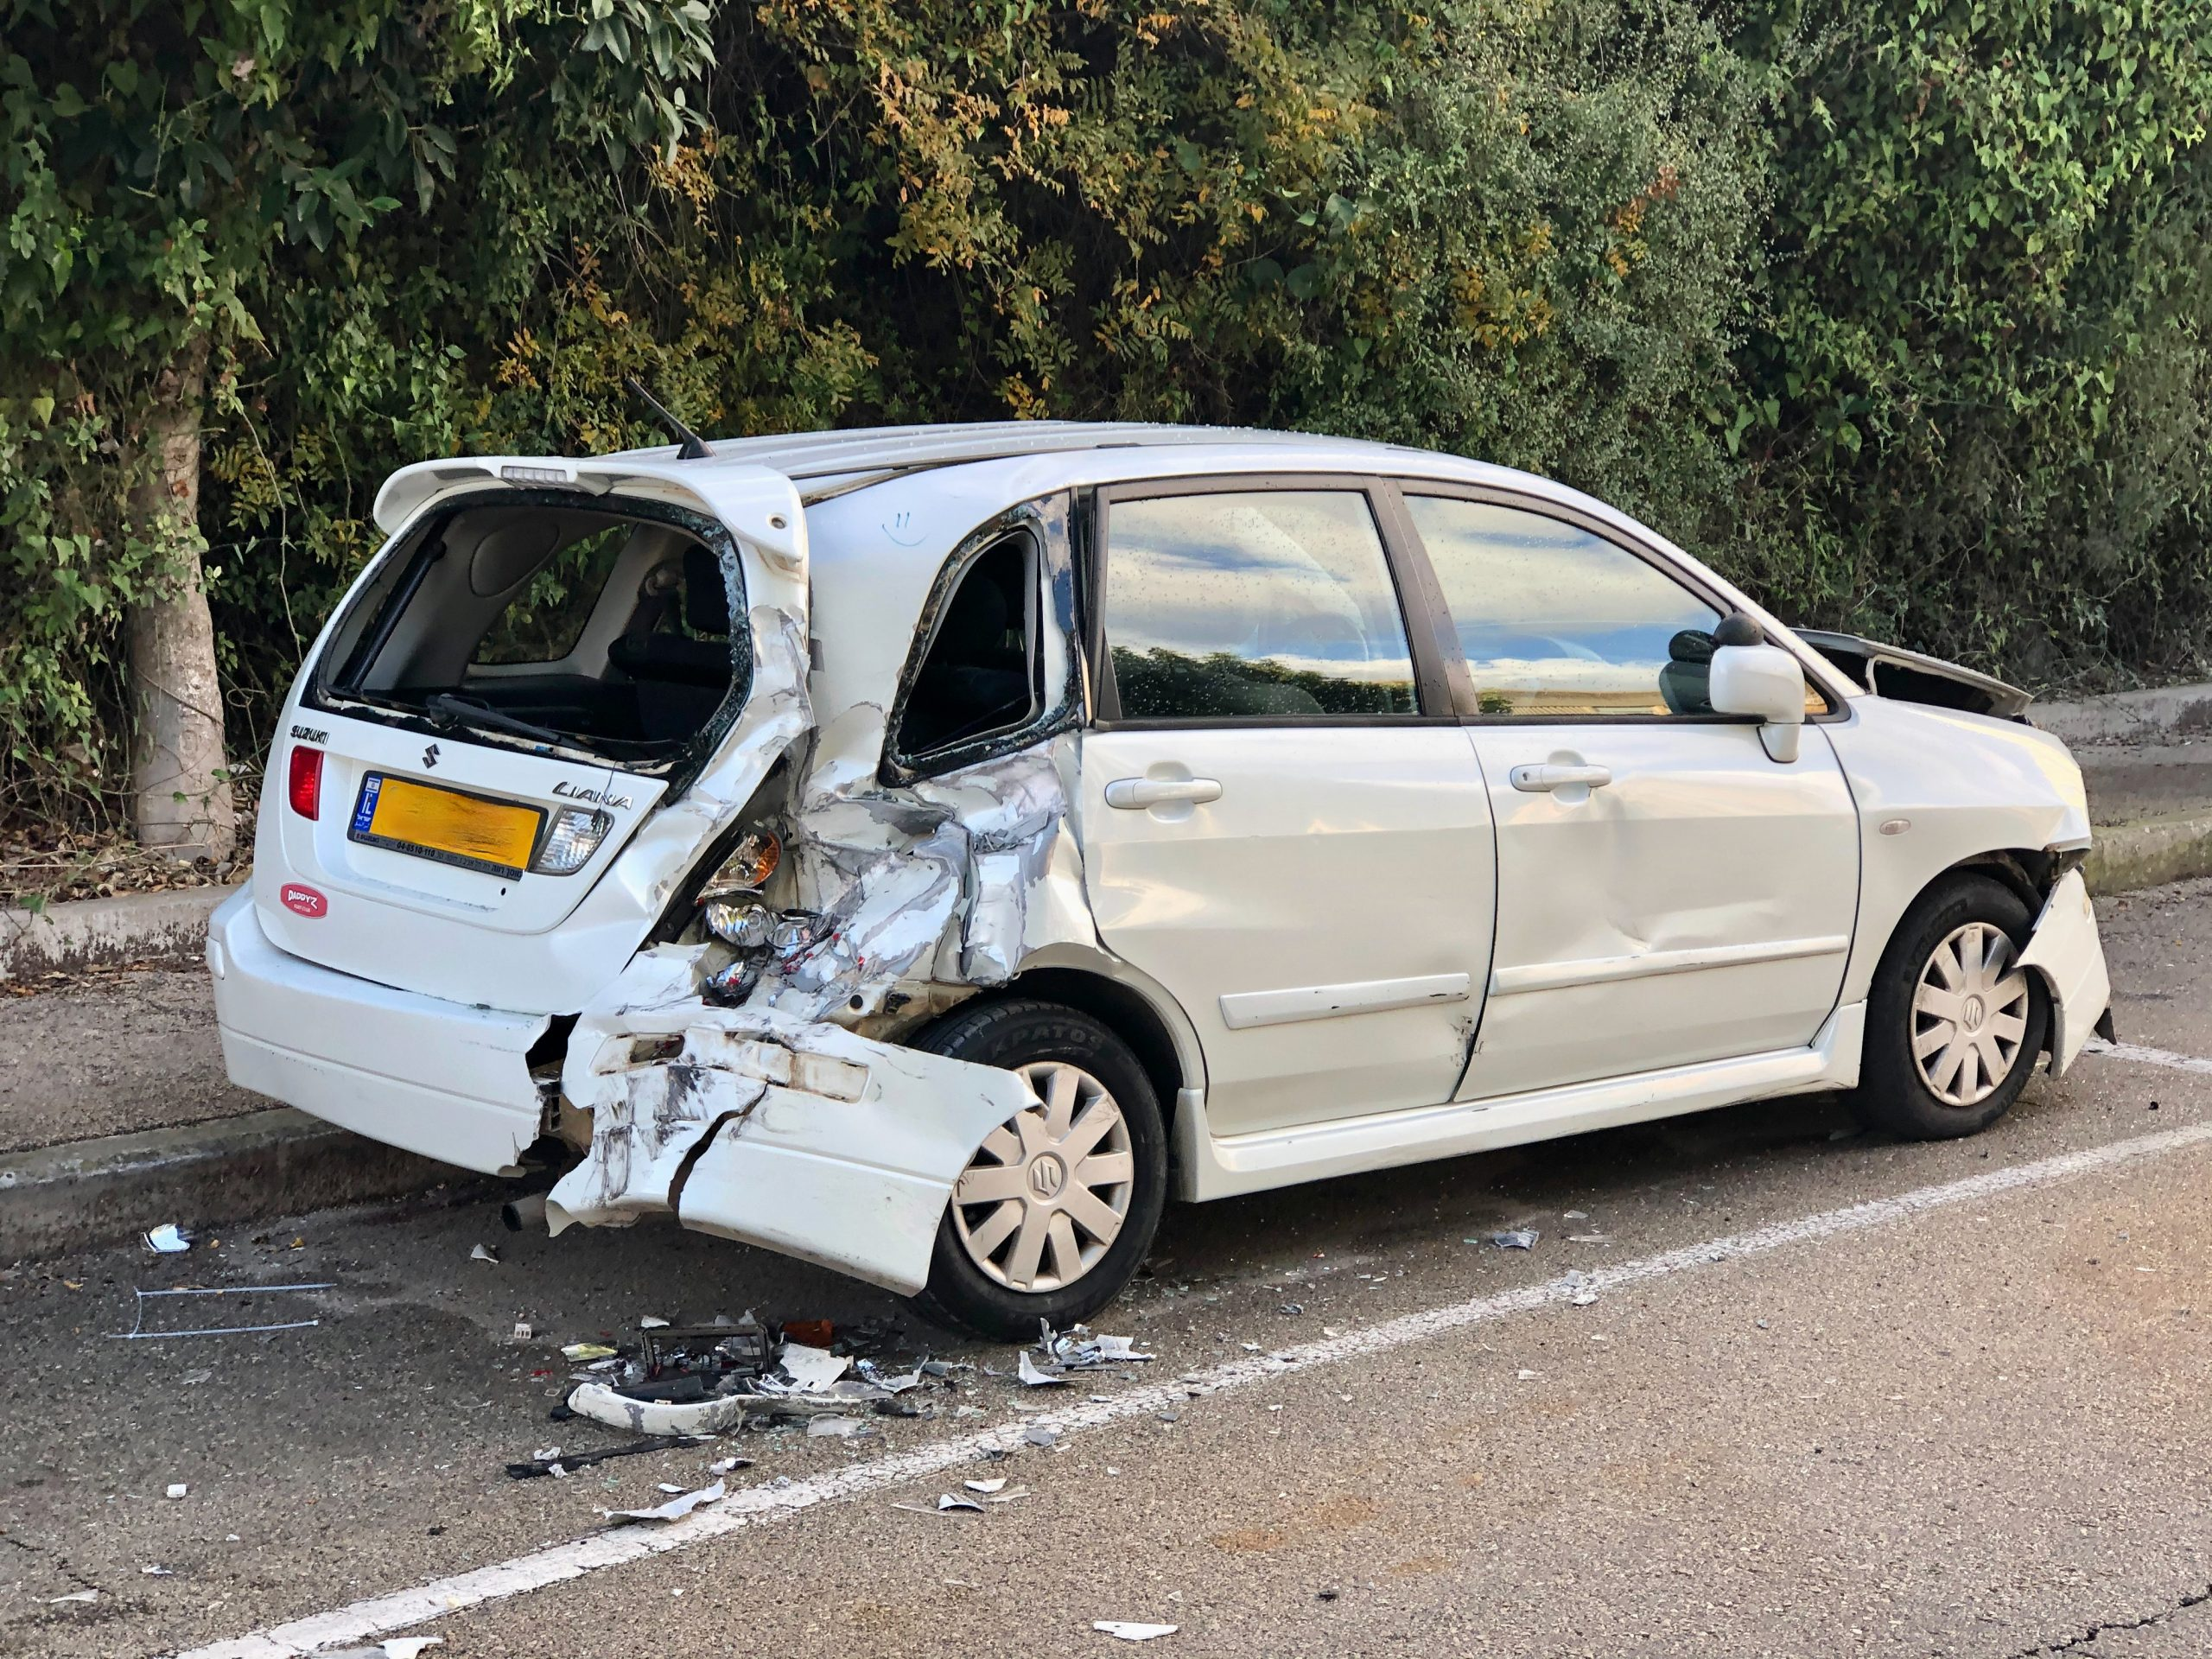 Israel ranks worst in road accidents among OECD countries